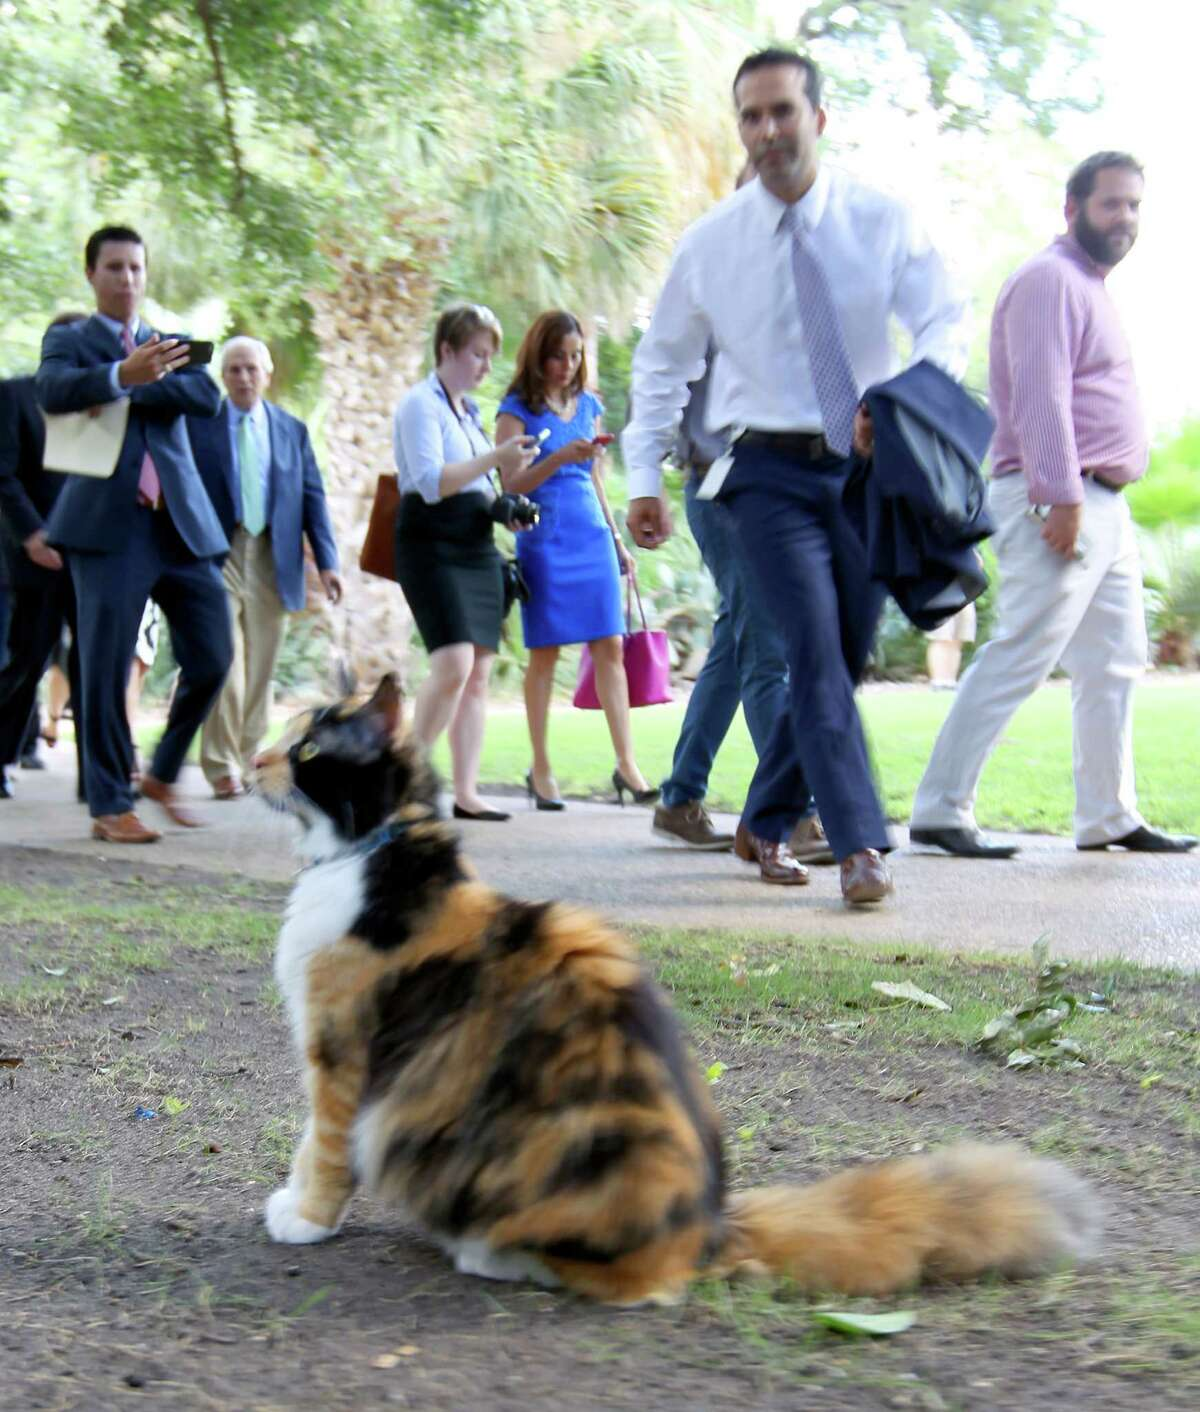 Texas Land Commissioner George P. Bush walks Wednesday toward Bella, the Alamo Cat, while on a tour of the Alamo grounds. Bush was in San Anotnio to celebrate the $31.5 million the General Land Office received to help preserve and develop the Alamo.